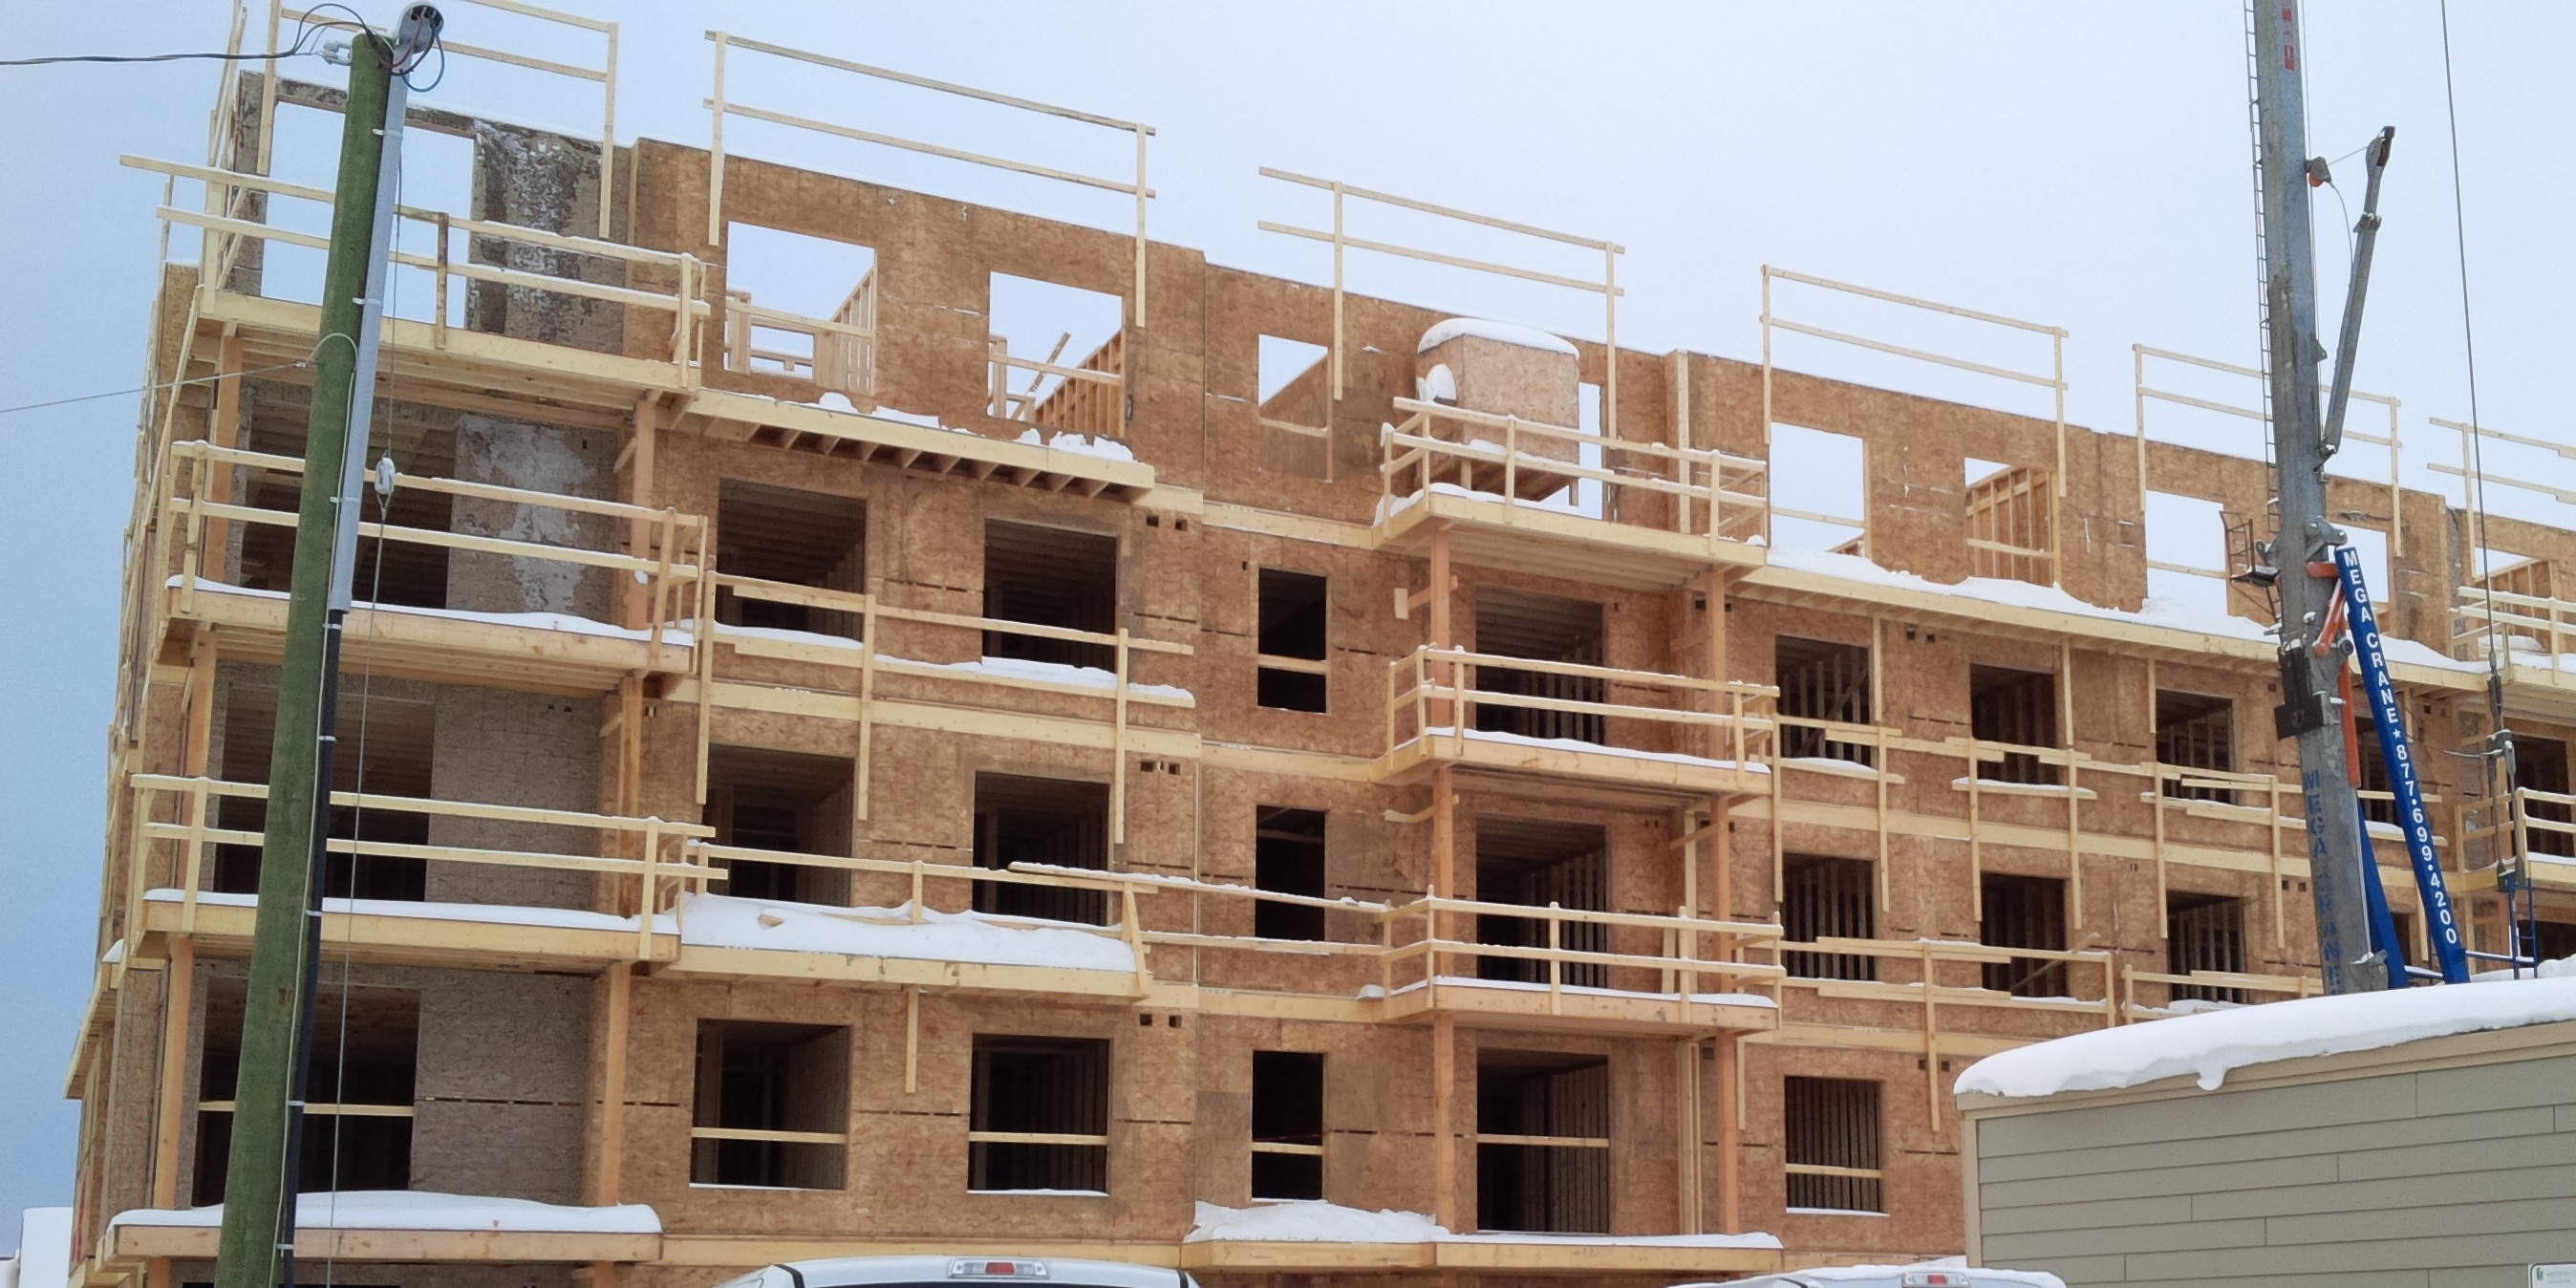 Winton walls for Panelized building systems